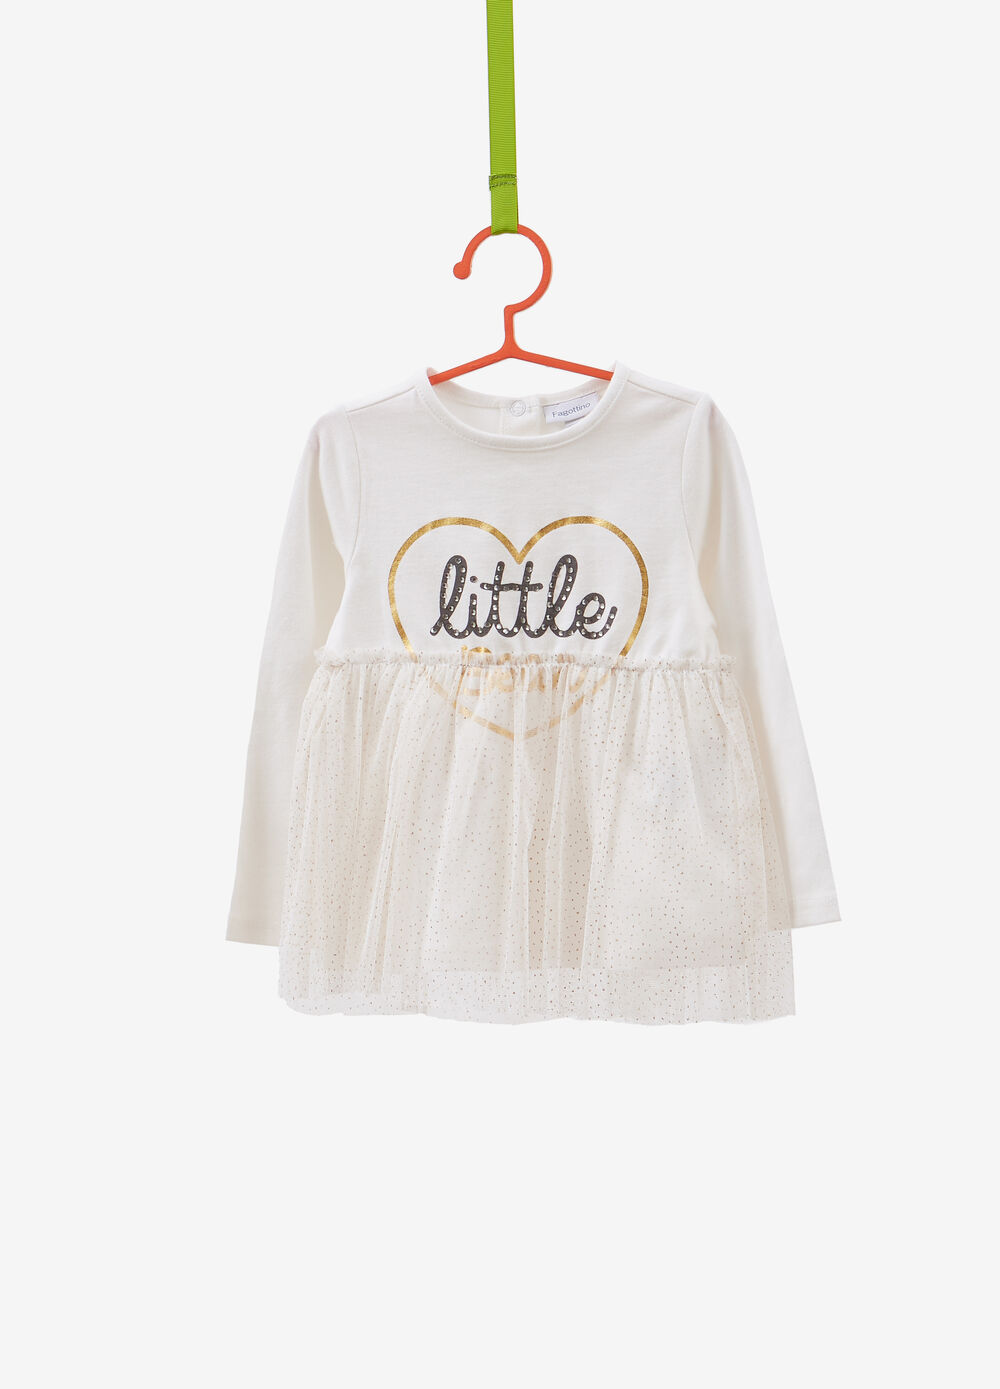 T-shirt with tulle flounce and printed lettering